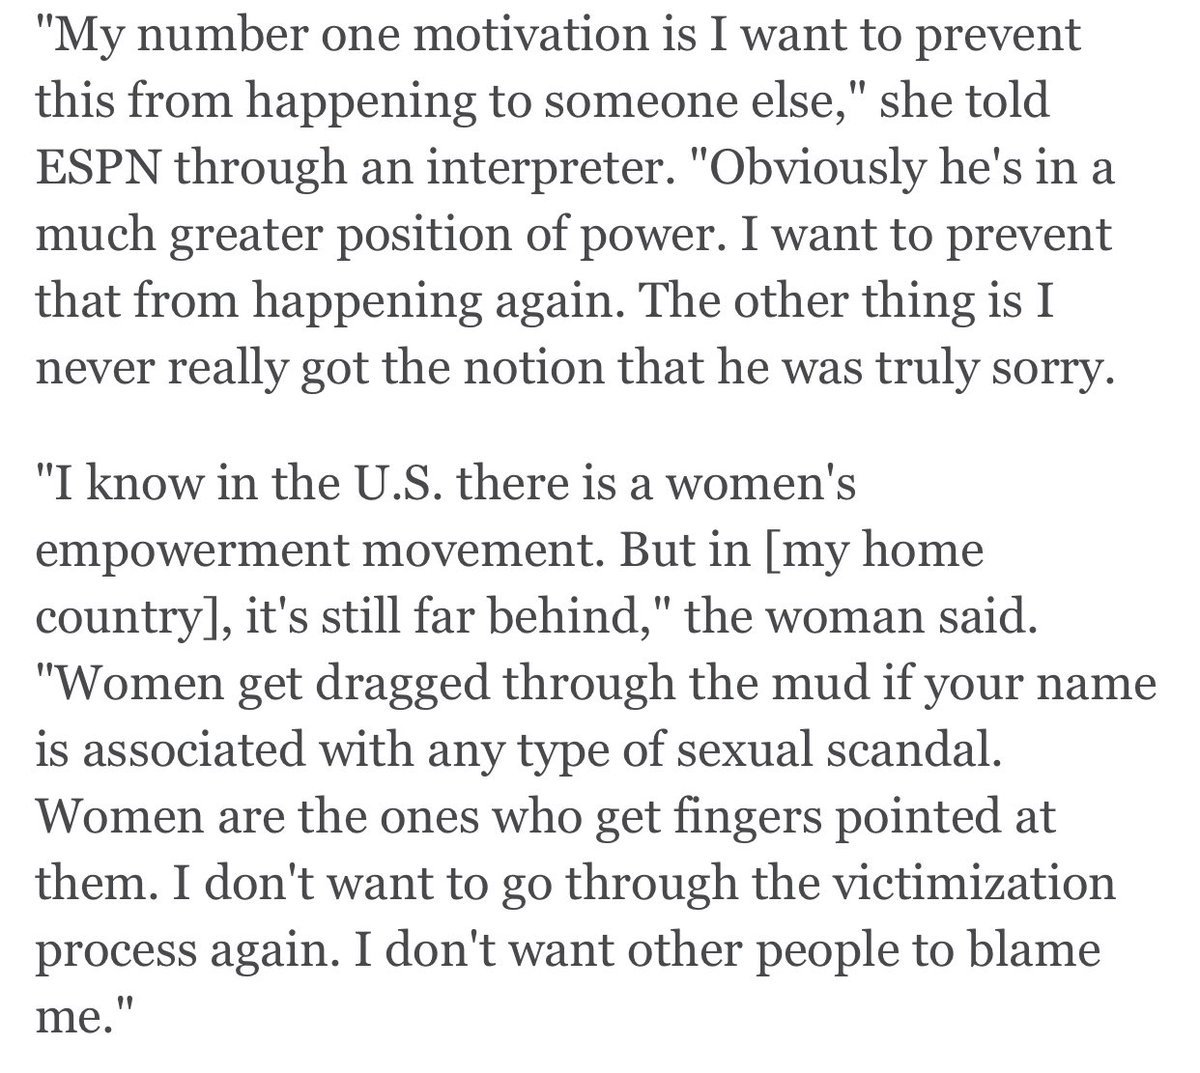 "A crucial quote from this deeply reported @JeffPassan and @minakimes story: ""My number one motivation is I want to prevent this from happening to someone else...   Women are the ones who get fingers pointed at them. I don't want to go through the victimization process again."" https://t.co/K7IqFxu9J2 https://t.co/9HcLd5lBbK"